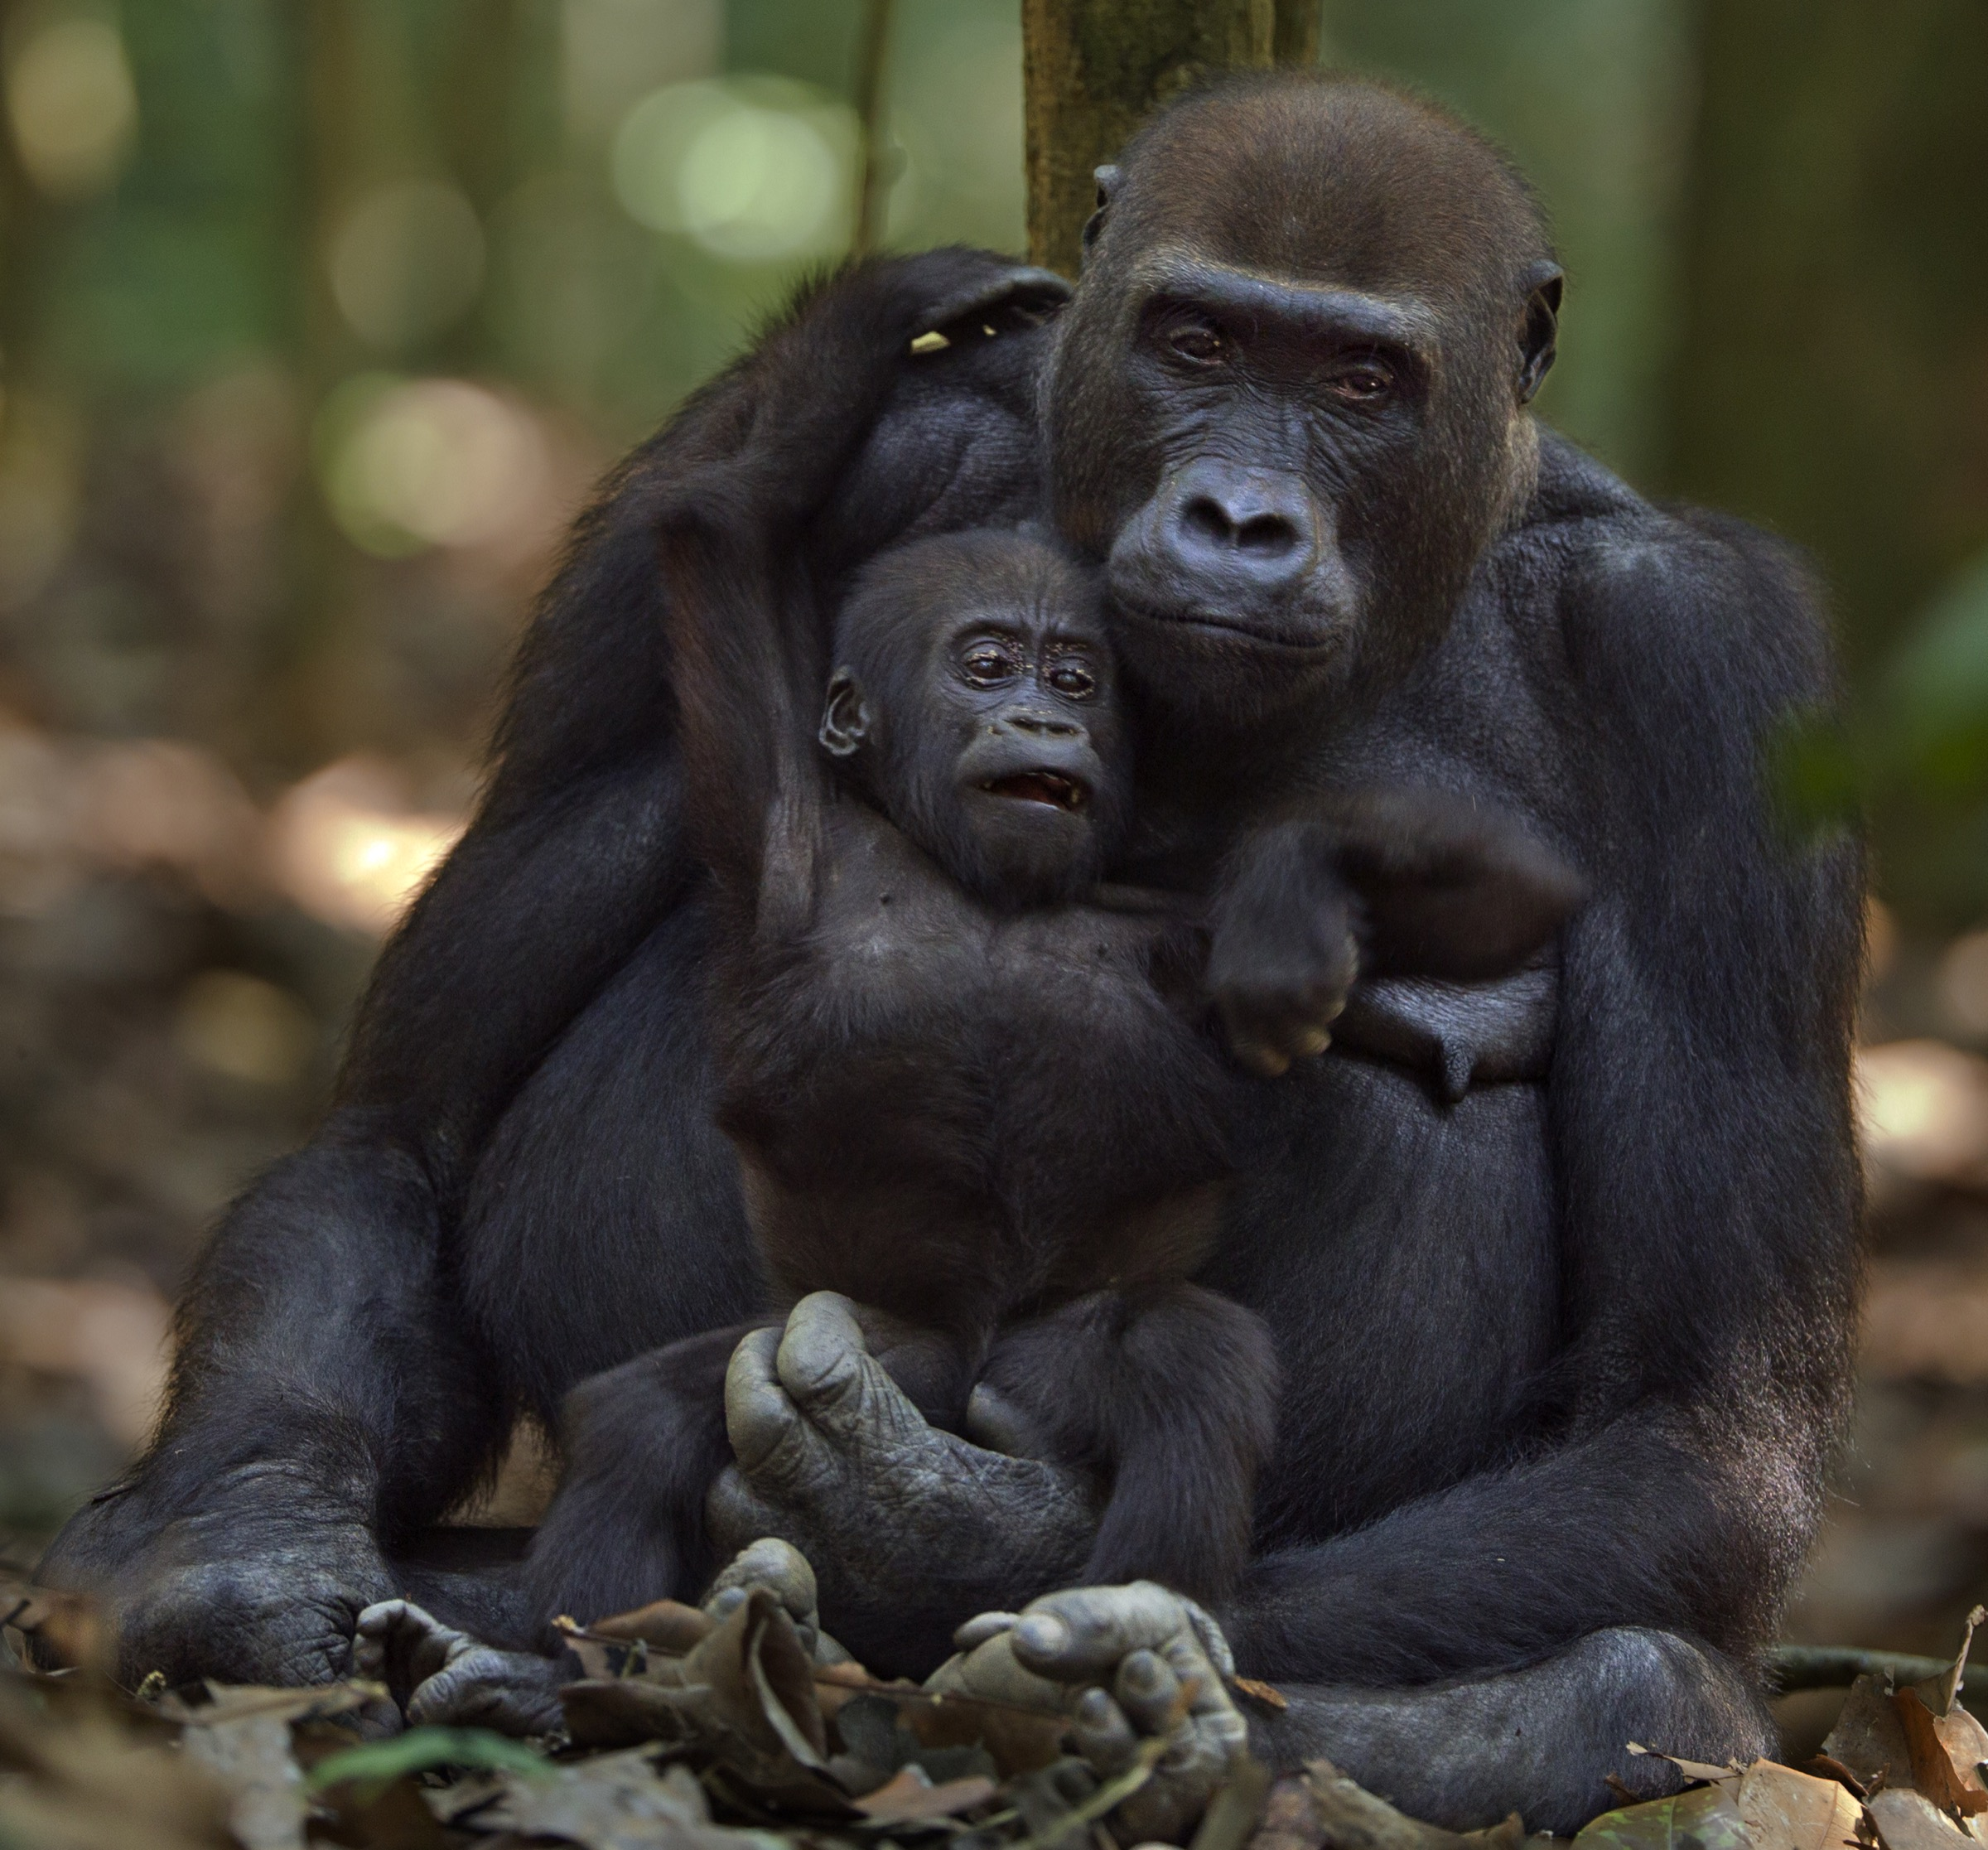 Mopambi was the older but lower-ranking of the two females in the family group. Here she sits with her playful infant Sopo, aged 18 months, who she would nurse and carry until he was 3 or 4 years old.